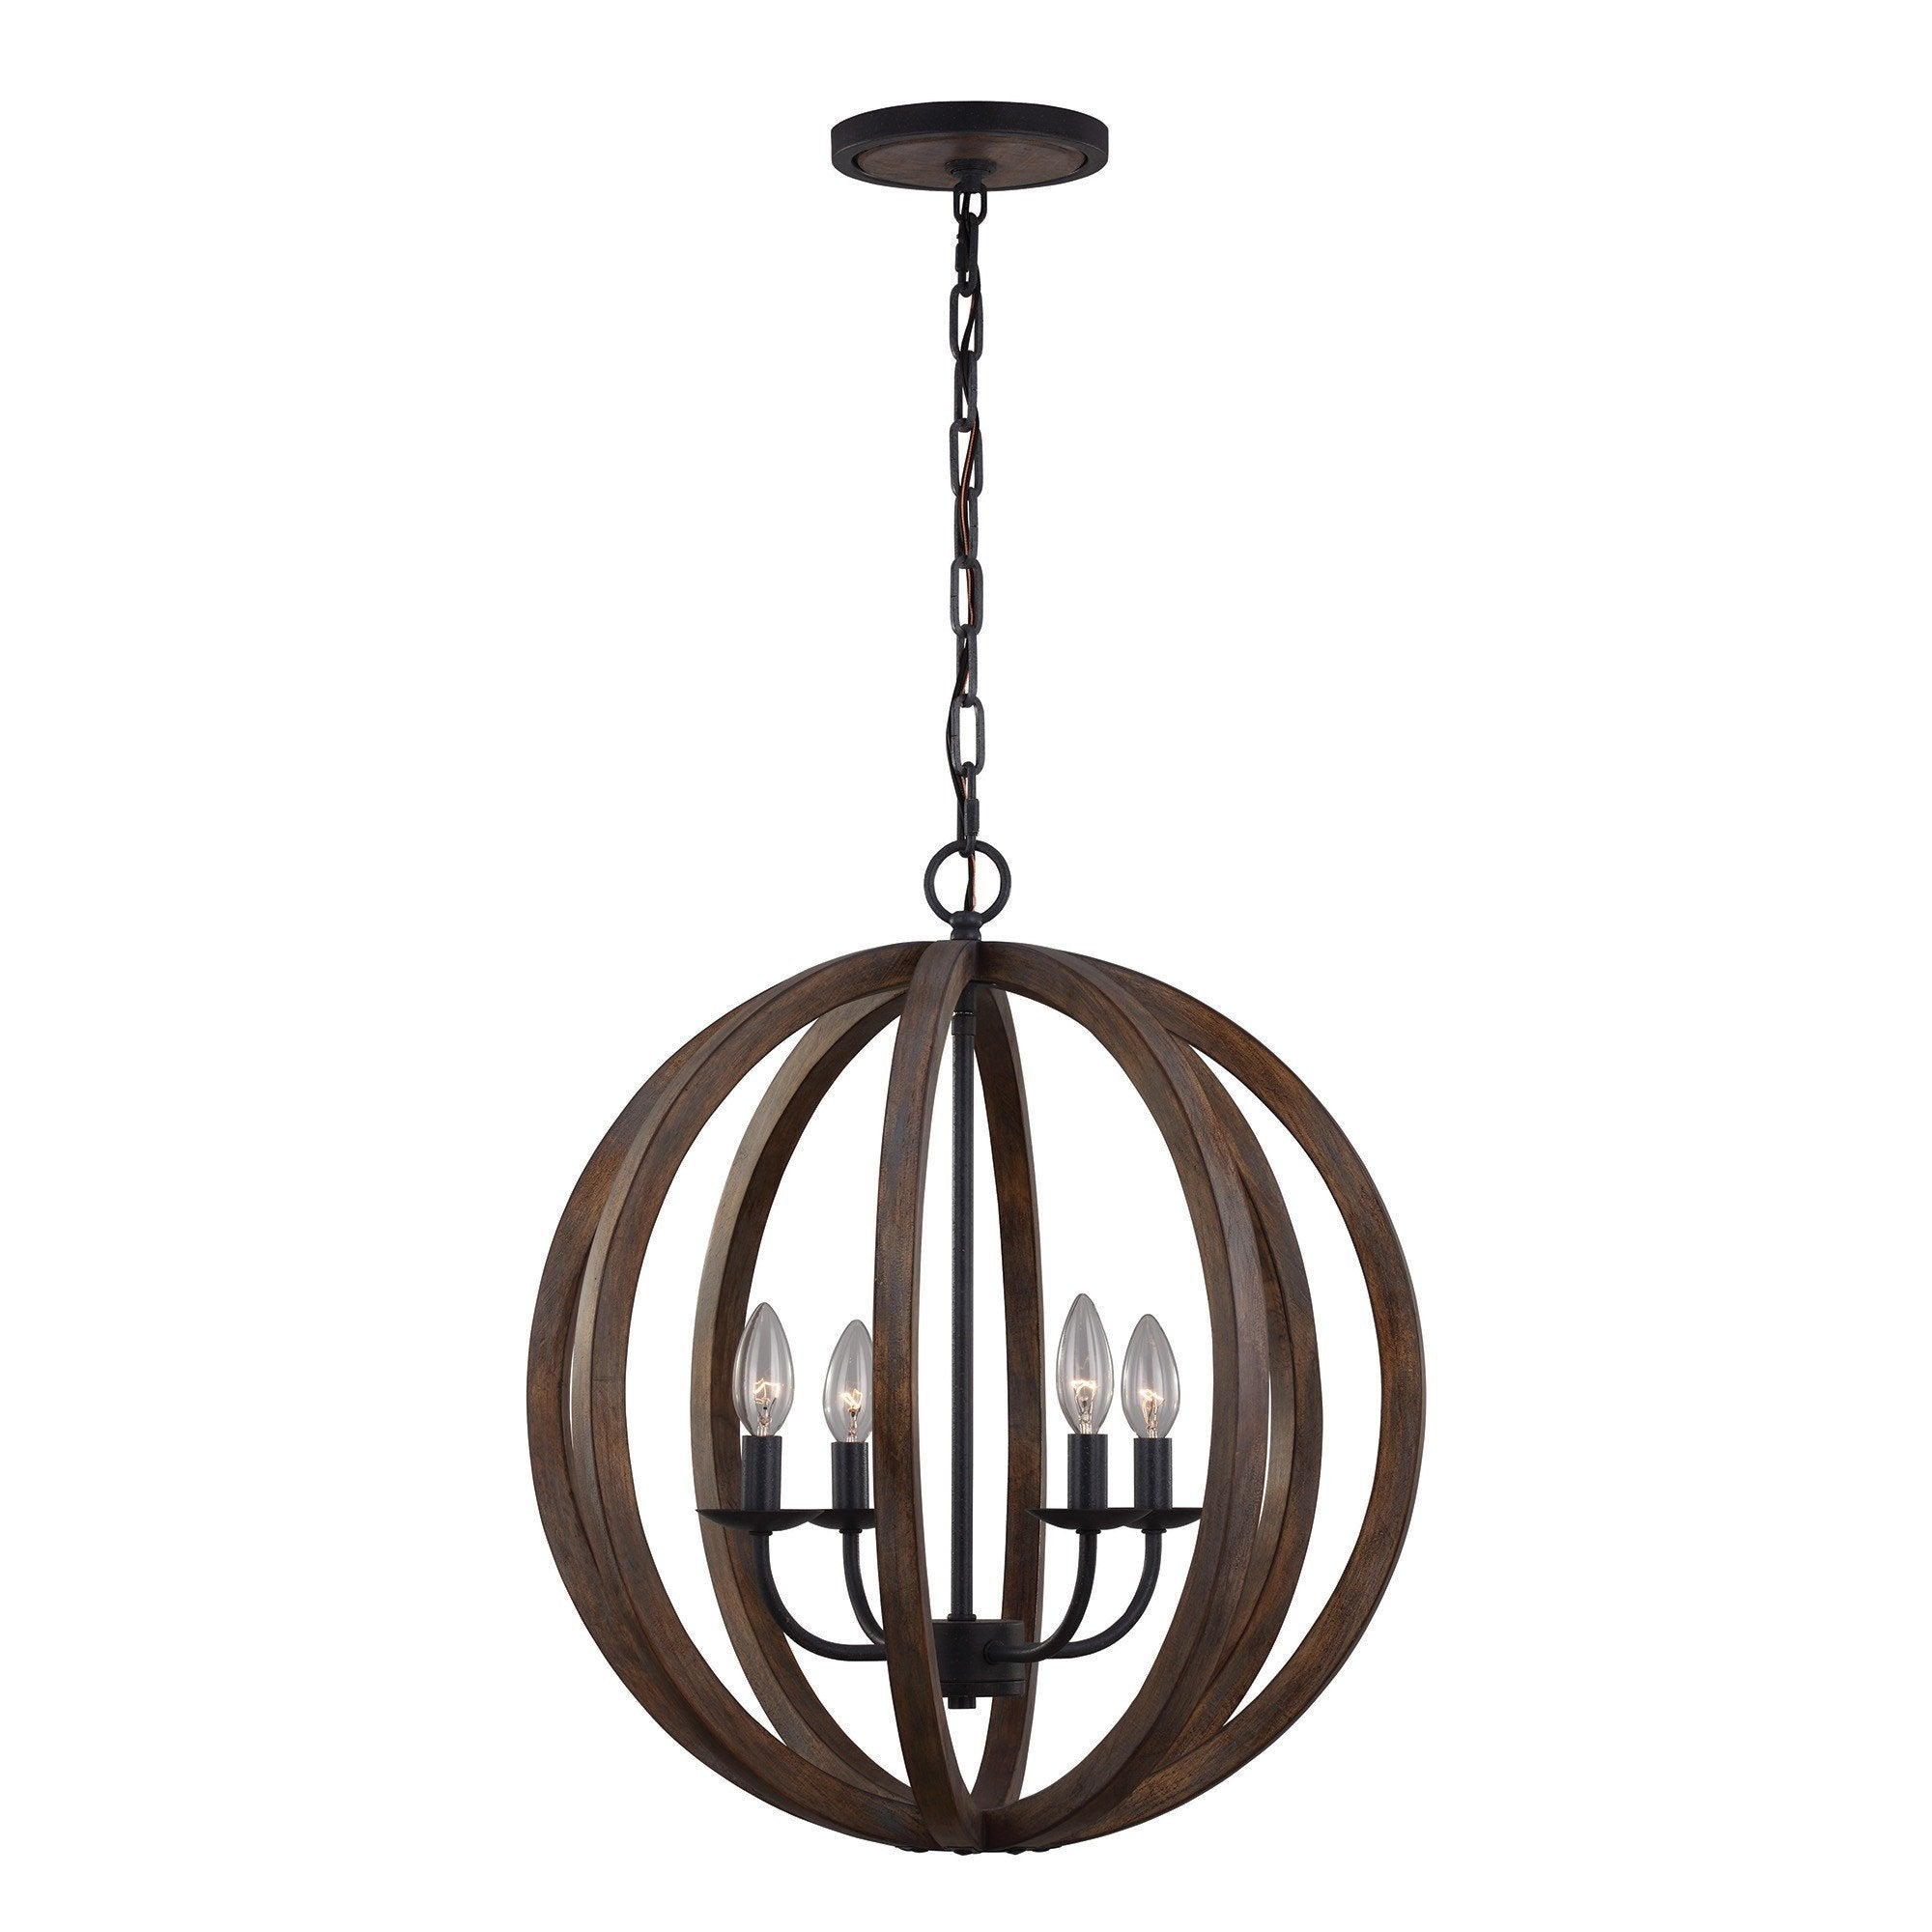 Feiss Allier 4 Light Pendant Light - London Lighting - 1